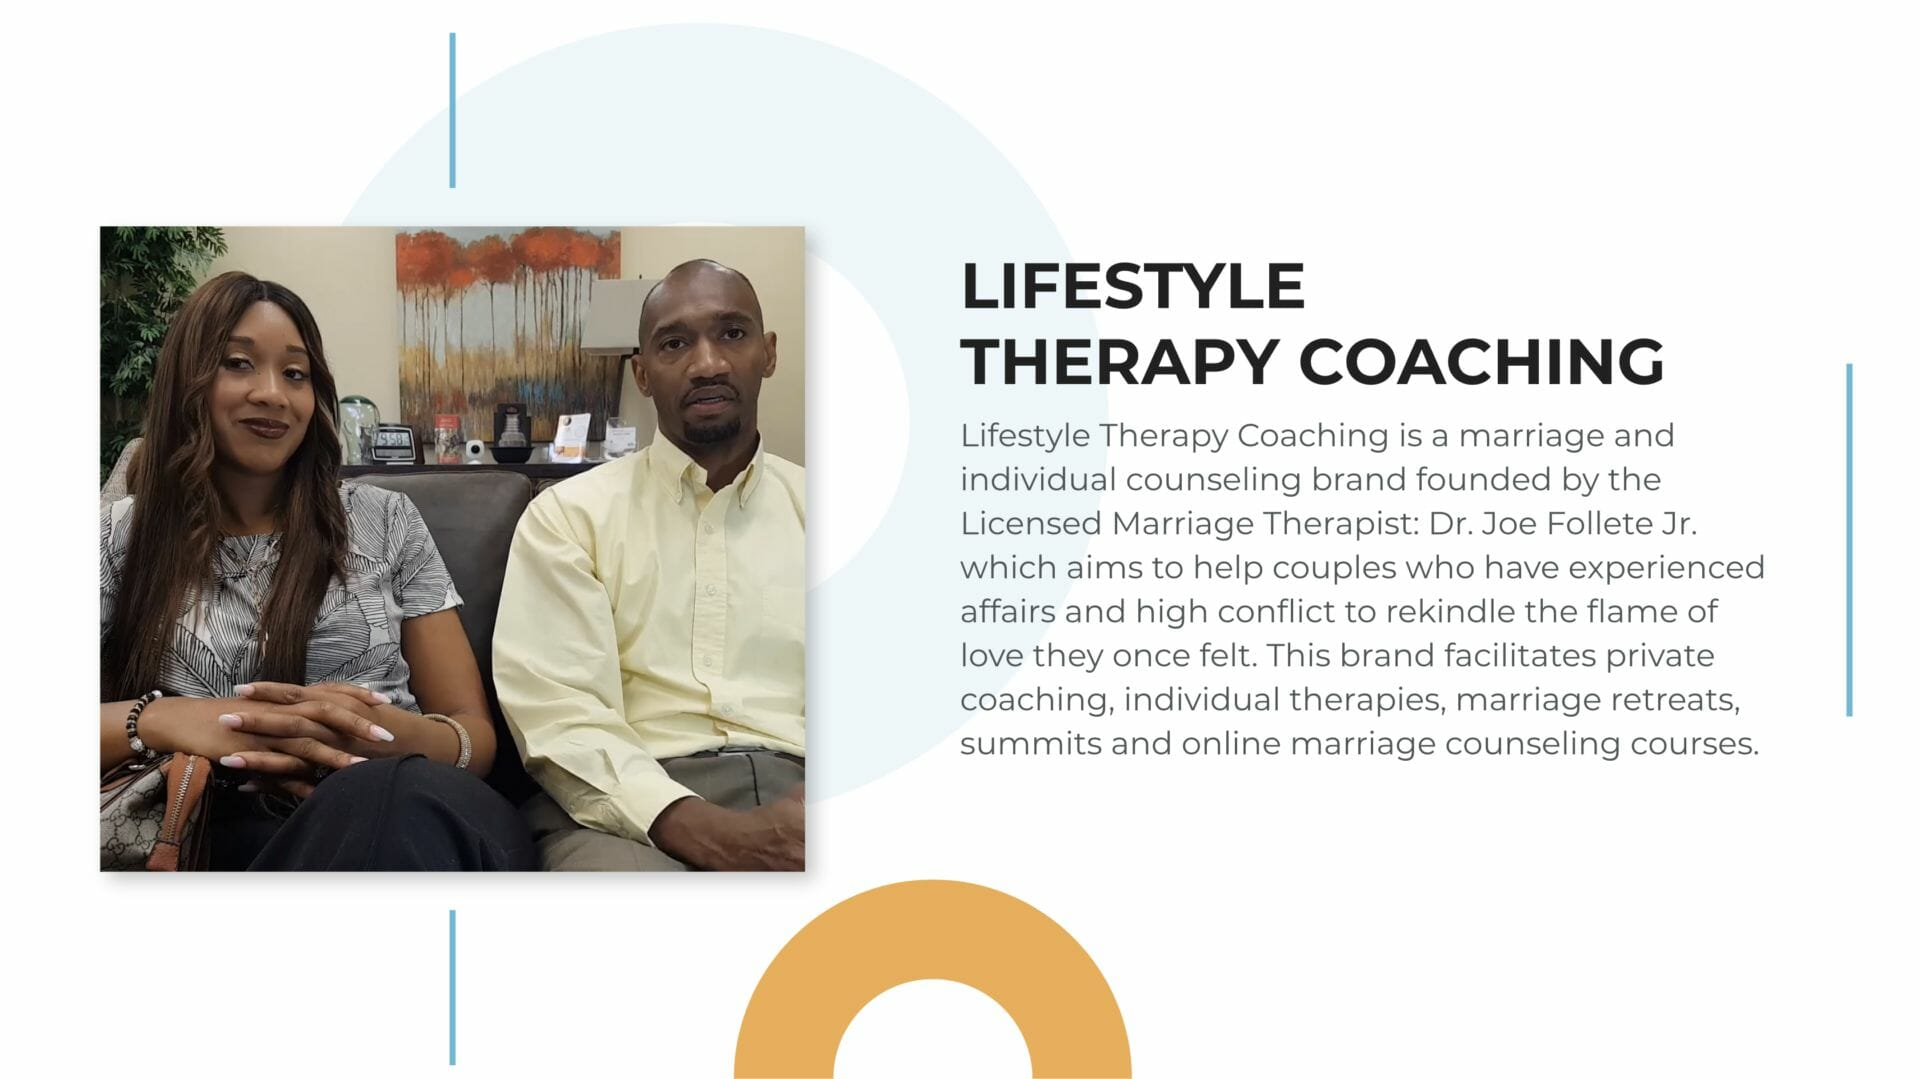 lifestyle therapy coaching therapist advertising and marketing